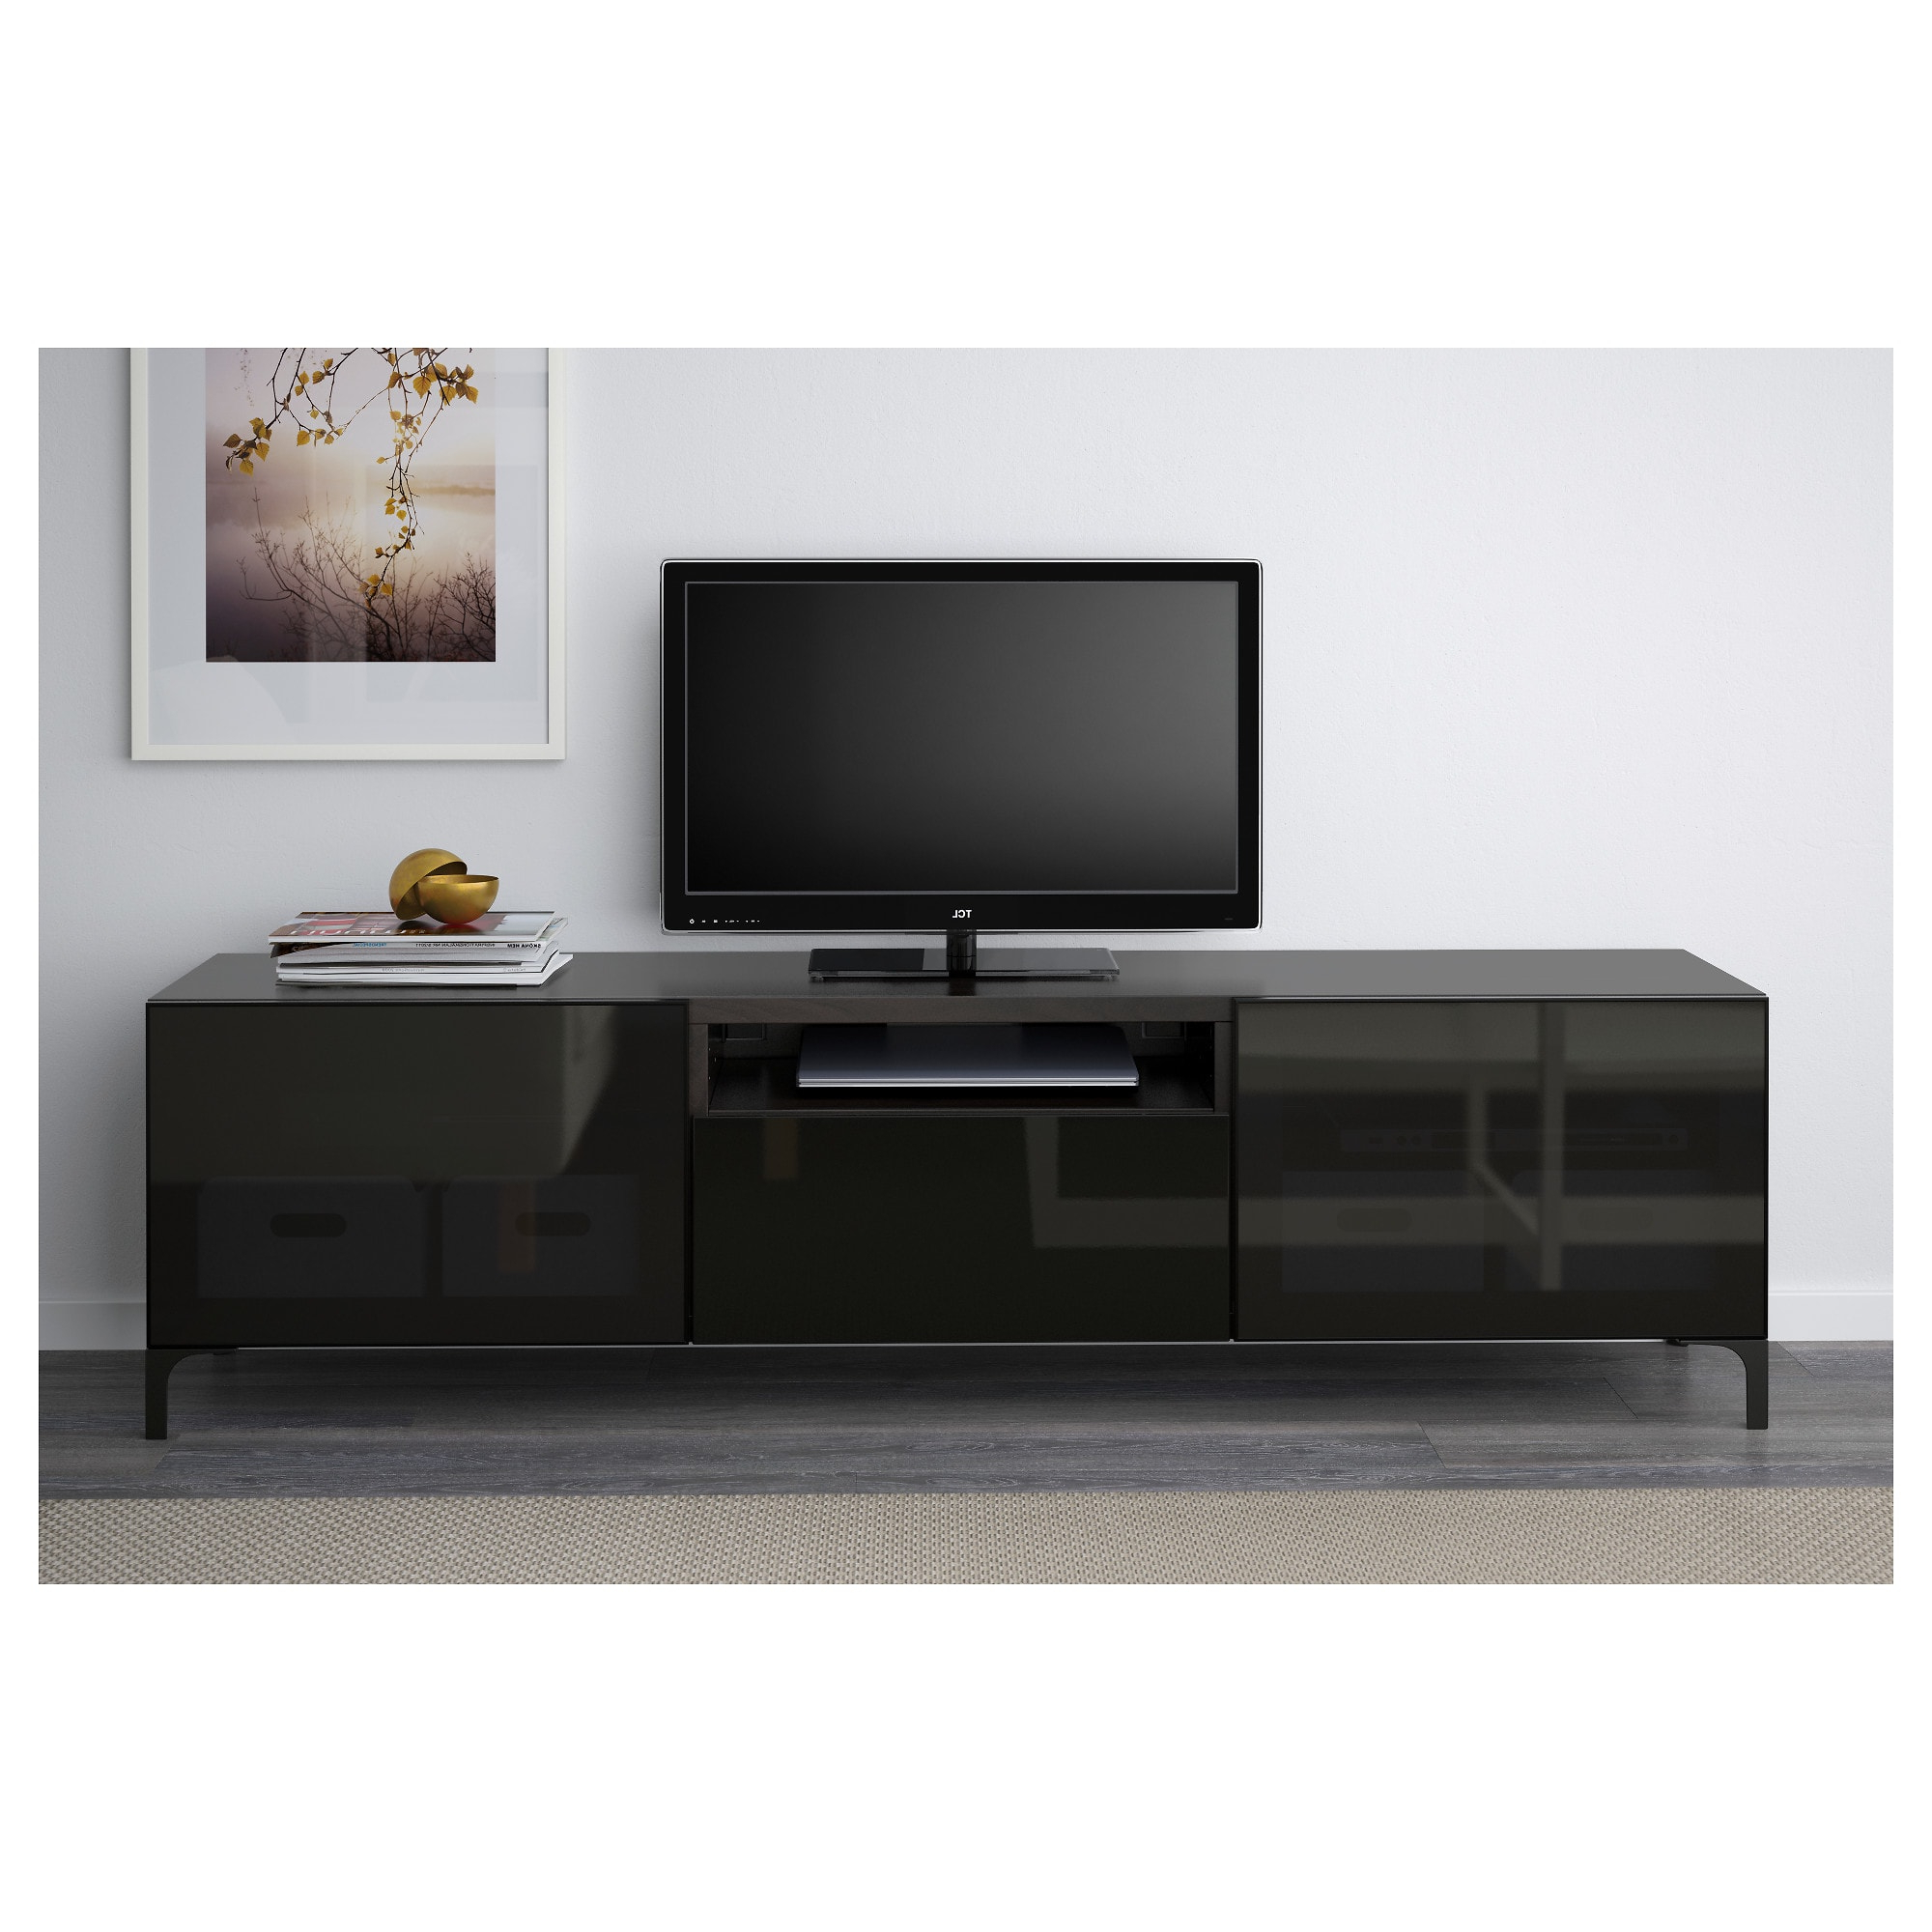 White Gloss Tv Cabinets In Fashionable Bestå Tv Bench Black Brown/selsviken High Gloss/black Smoked Glass (View 19 of 20)